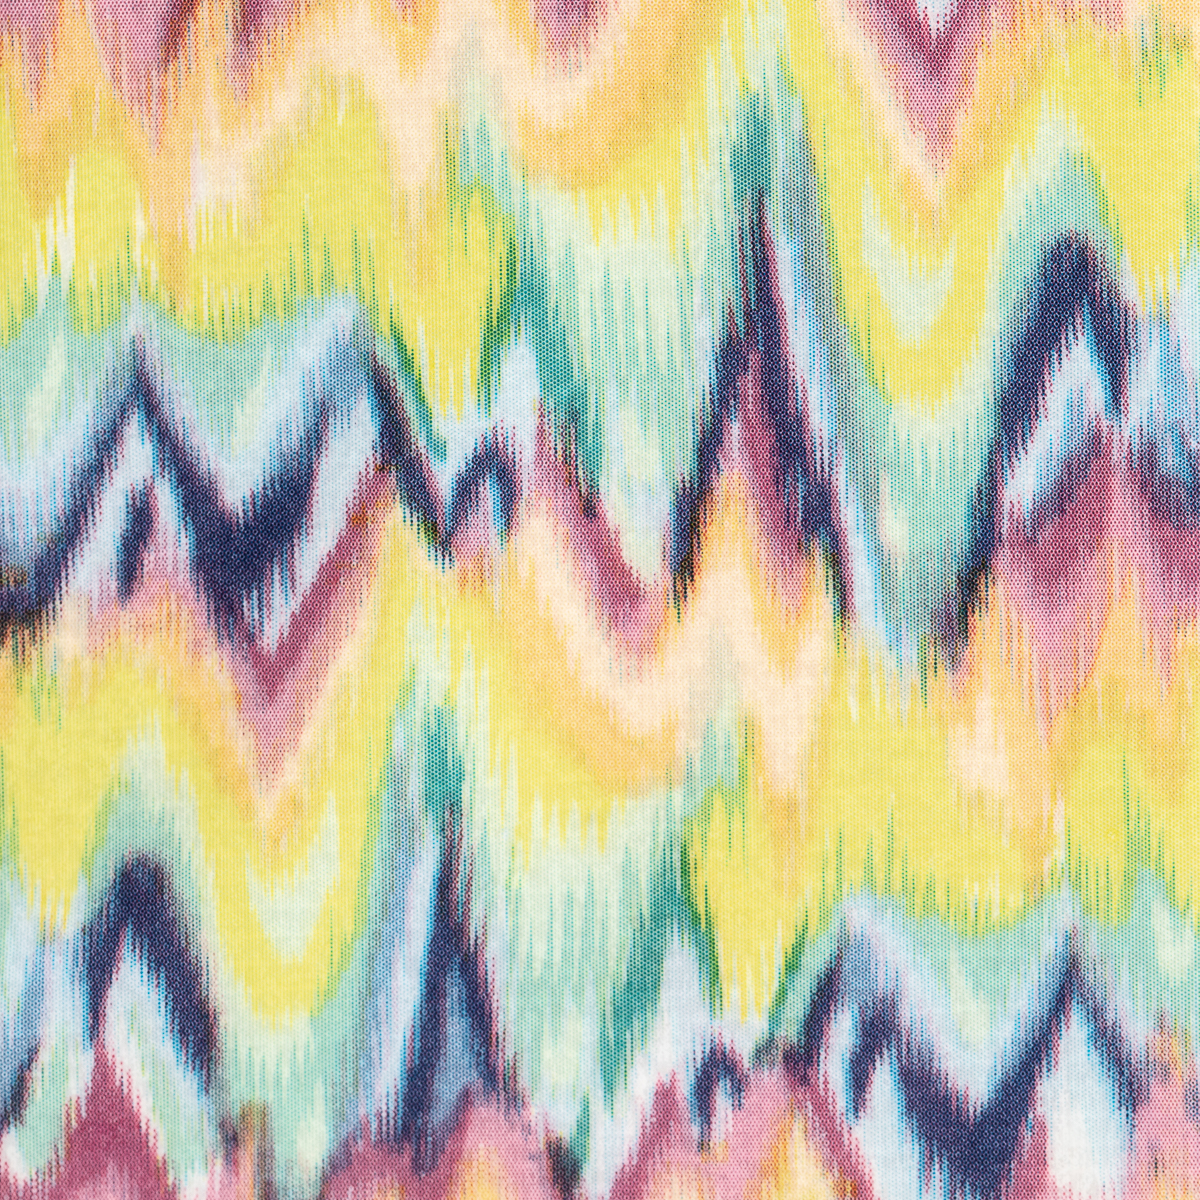 Simply-Genius-Duct-Tape-Roll-Colors-Patterns-Craft-Supplies-Colored-amp-Patterned thumbnail 122